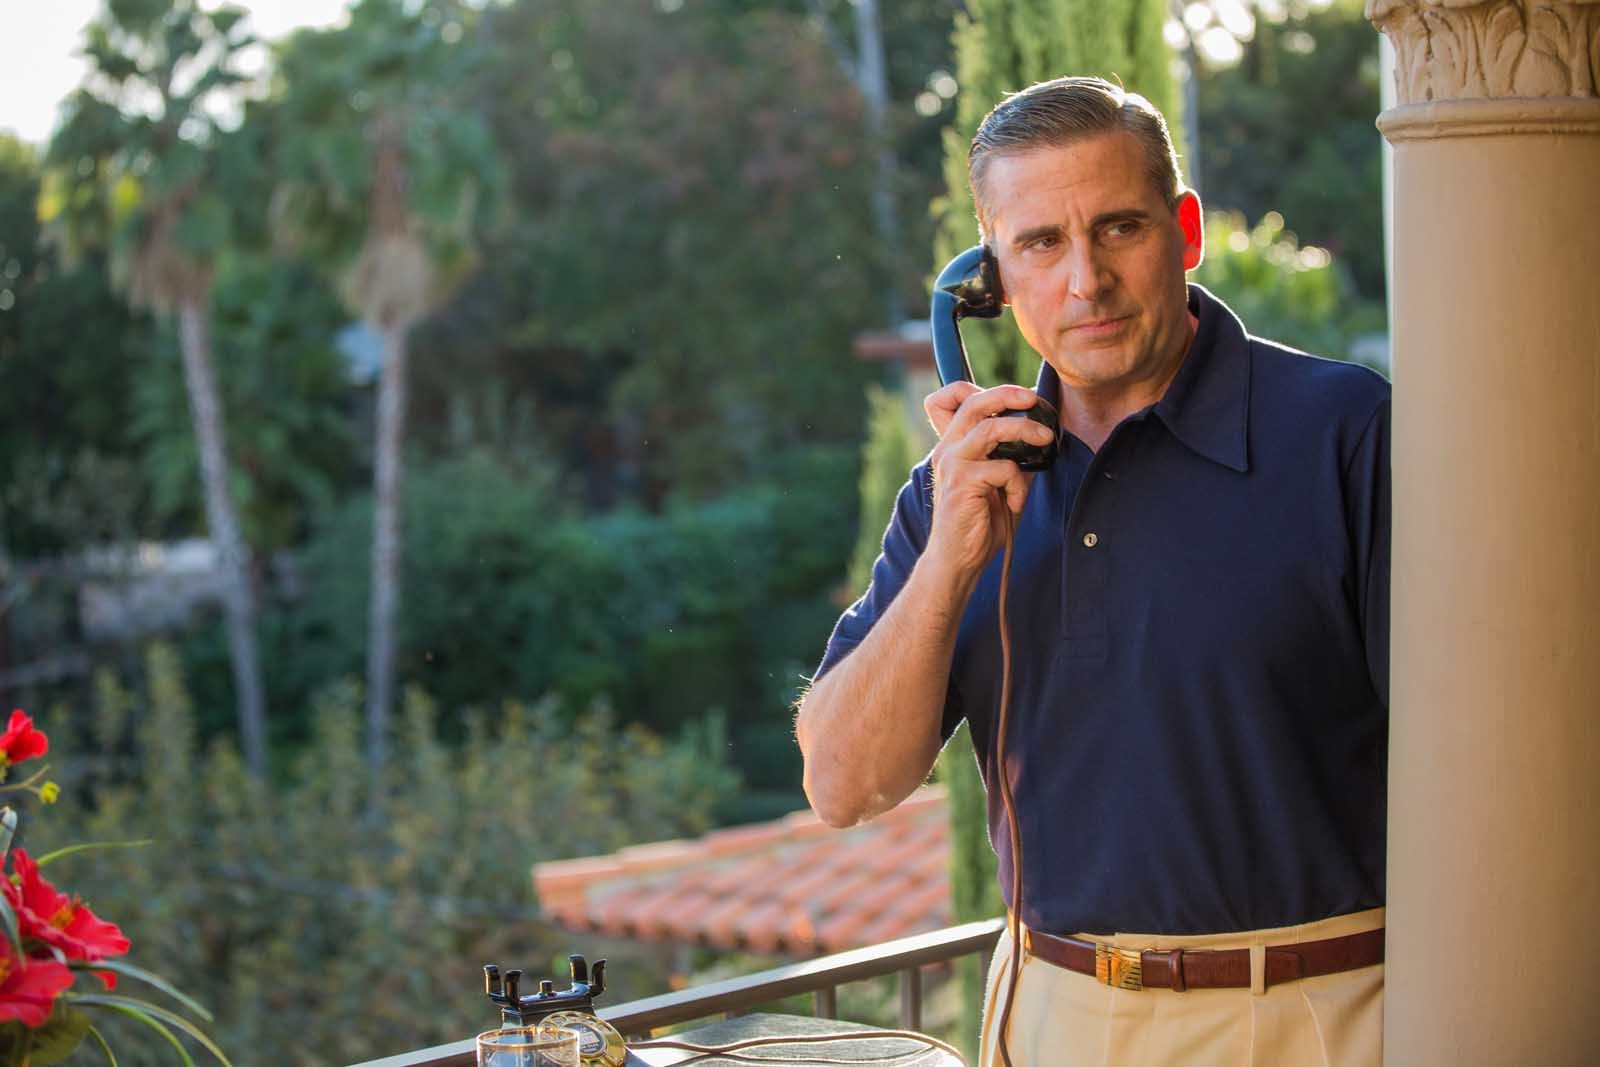 Café Society Steve Carell wallpapers 2018 in Movies